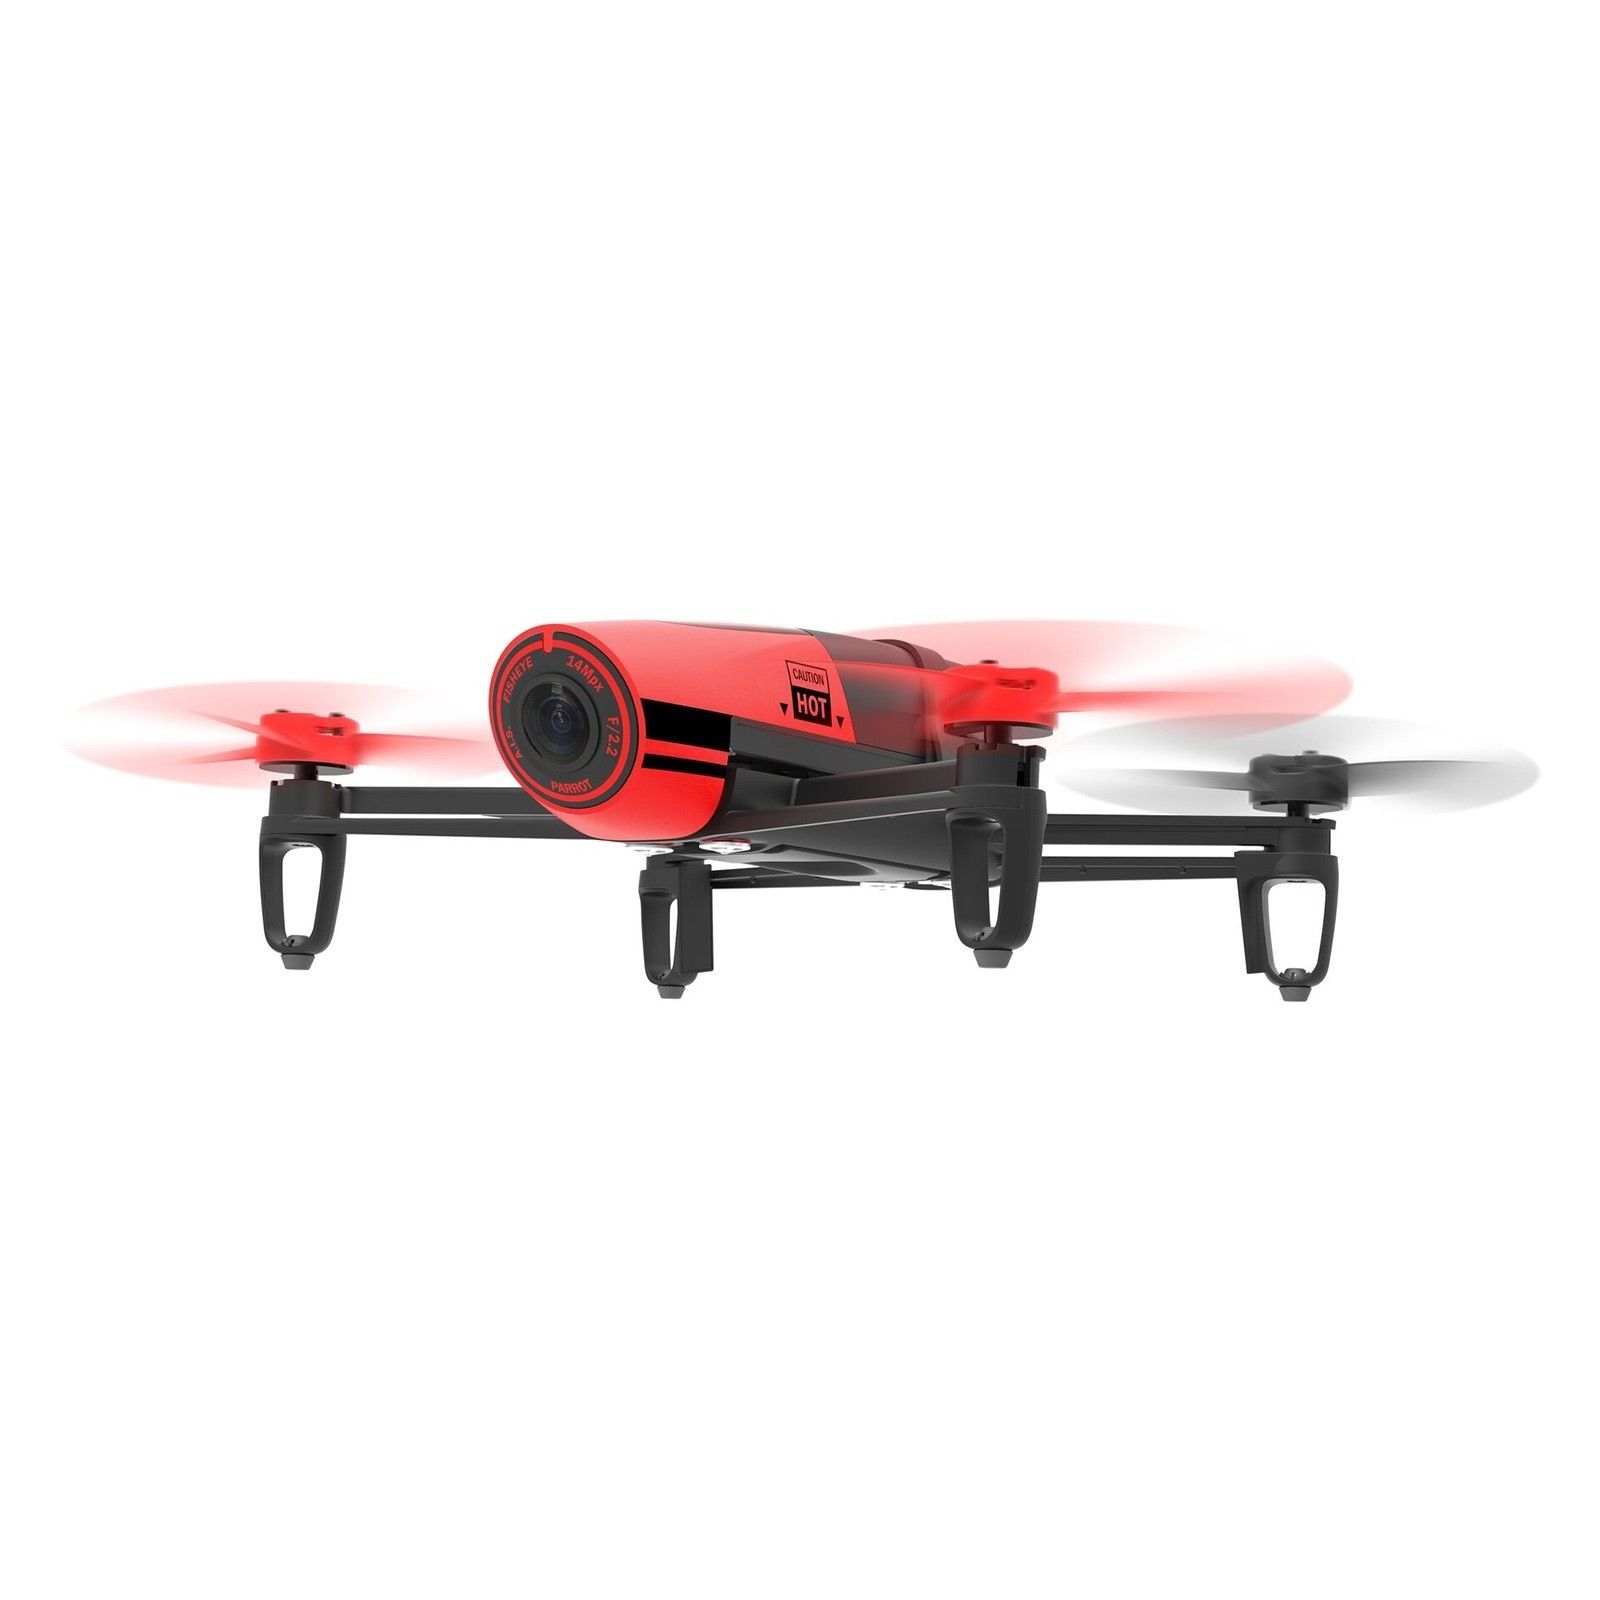 Only $100 - Gift Idea Parrot Quadcopter Drone with 14MP Full HD 1080p Wide-Angle Camera